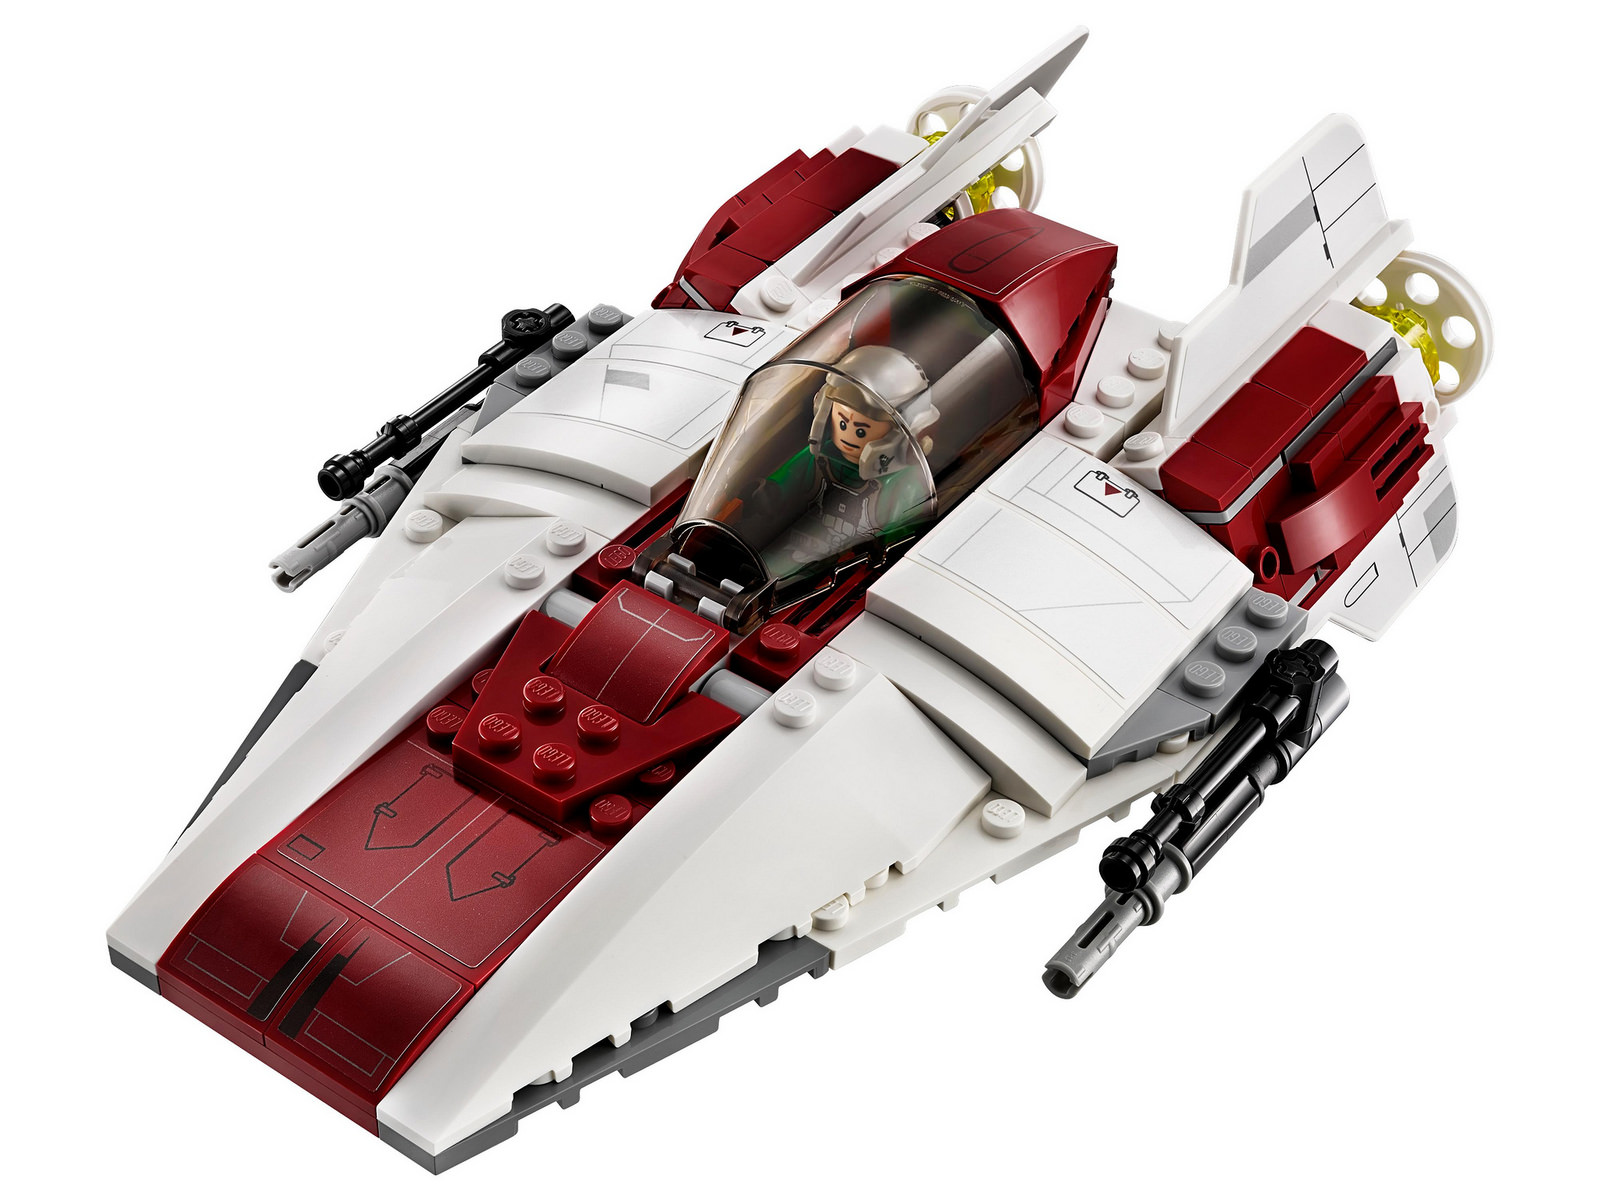 More 2017 LEGO Star Wars Classic Trilogy sets revealed [News